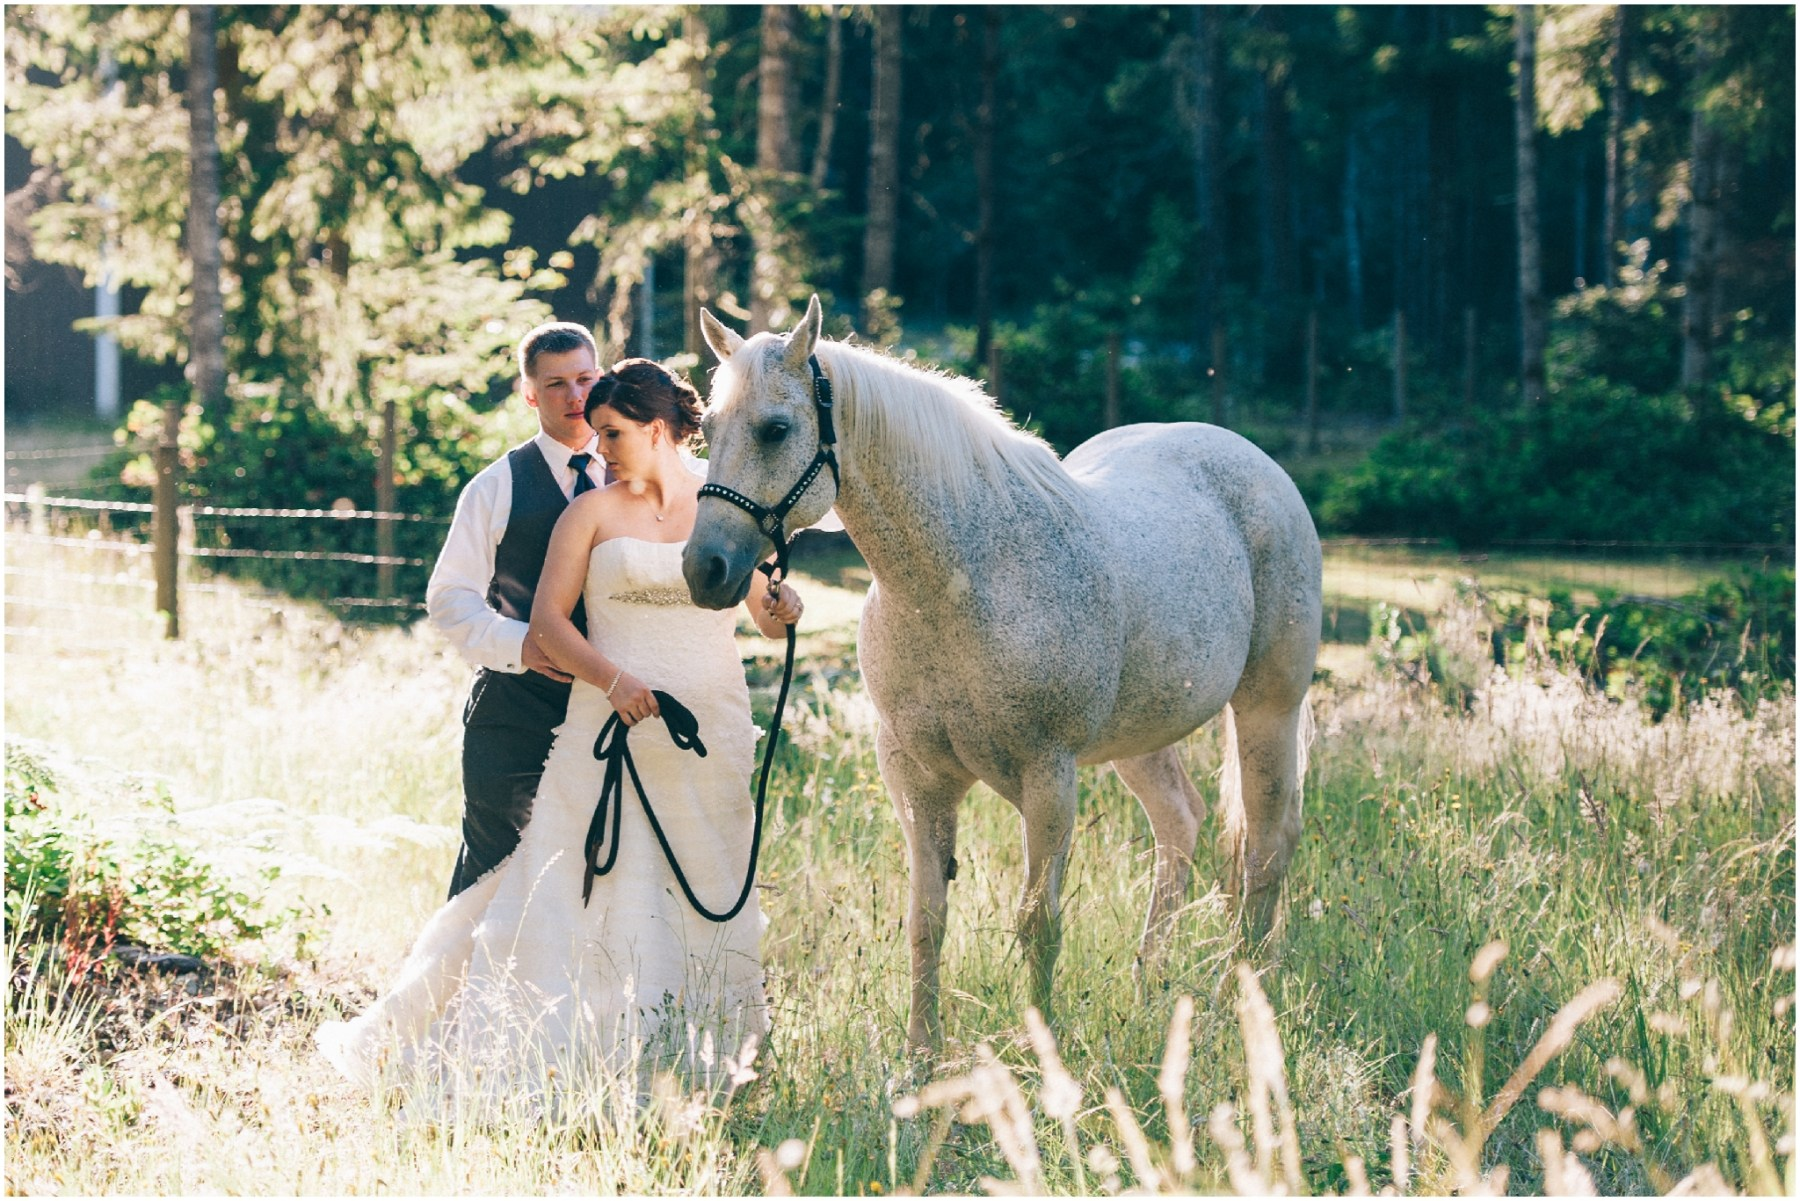 Bride and Groom Wedding Photo standing next to a horse by Ardita Kola Photography